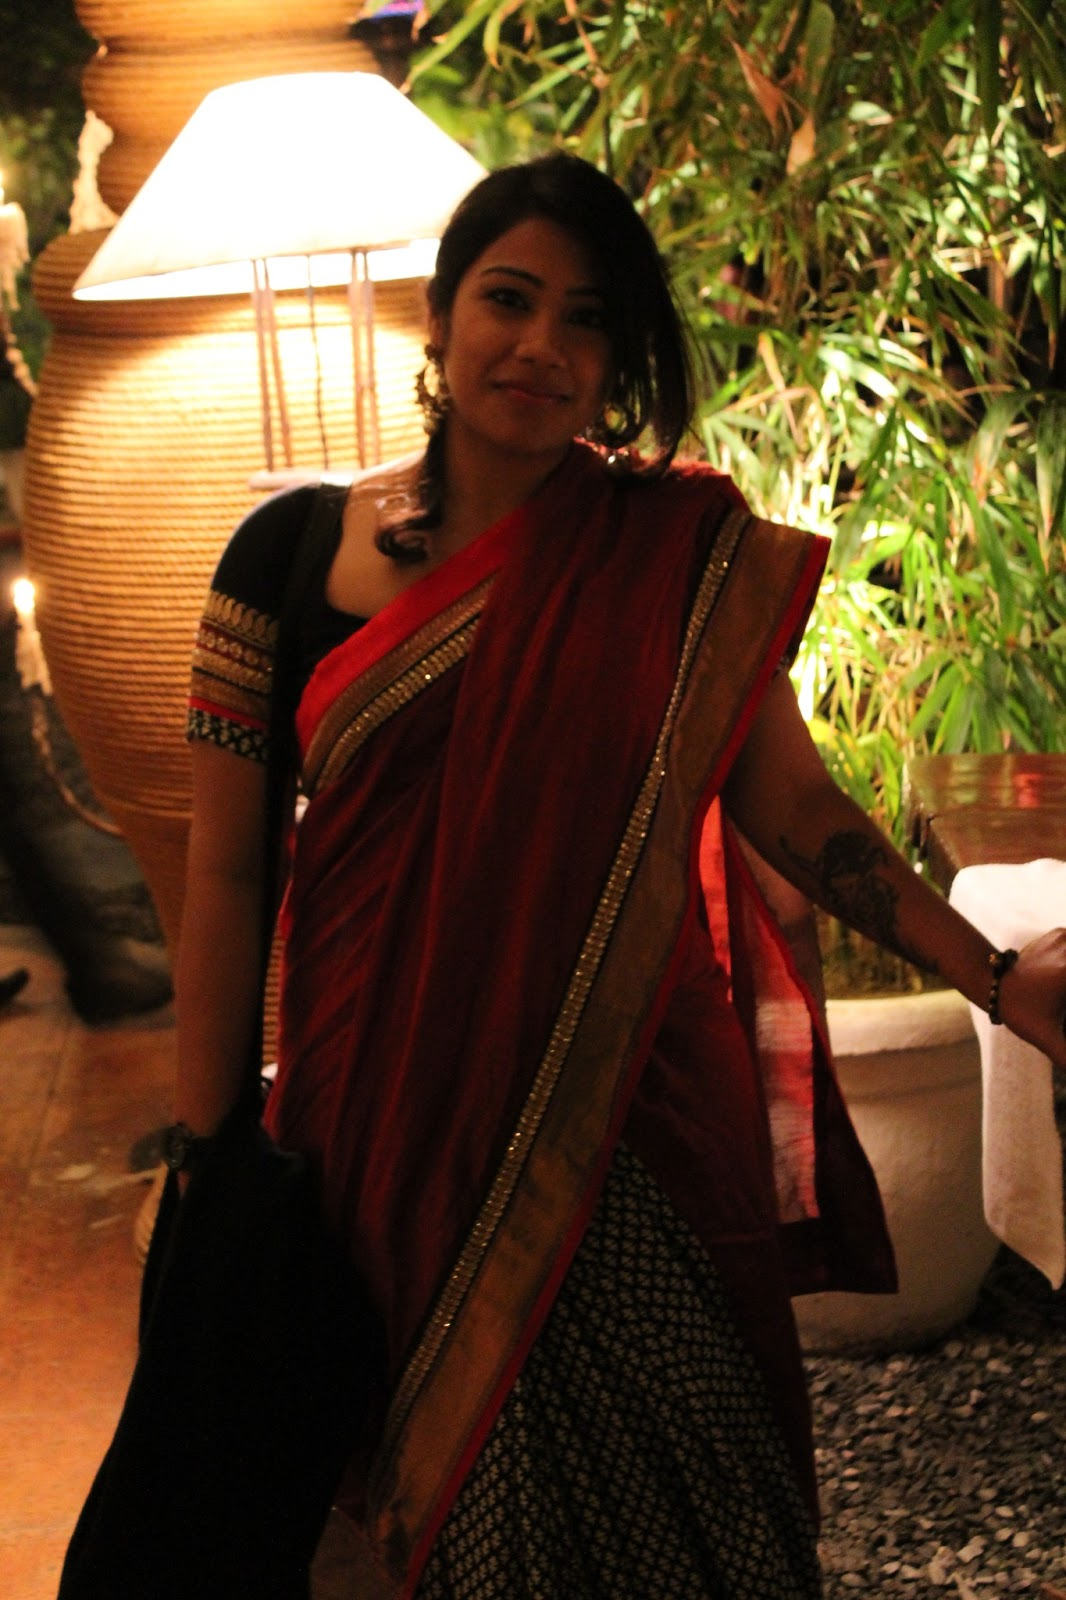 Arent You I Know Half Of The Million Women In This World Want To Own A Sabyasachi Ensemble Me Being A Self Confessed Sari Fanatic